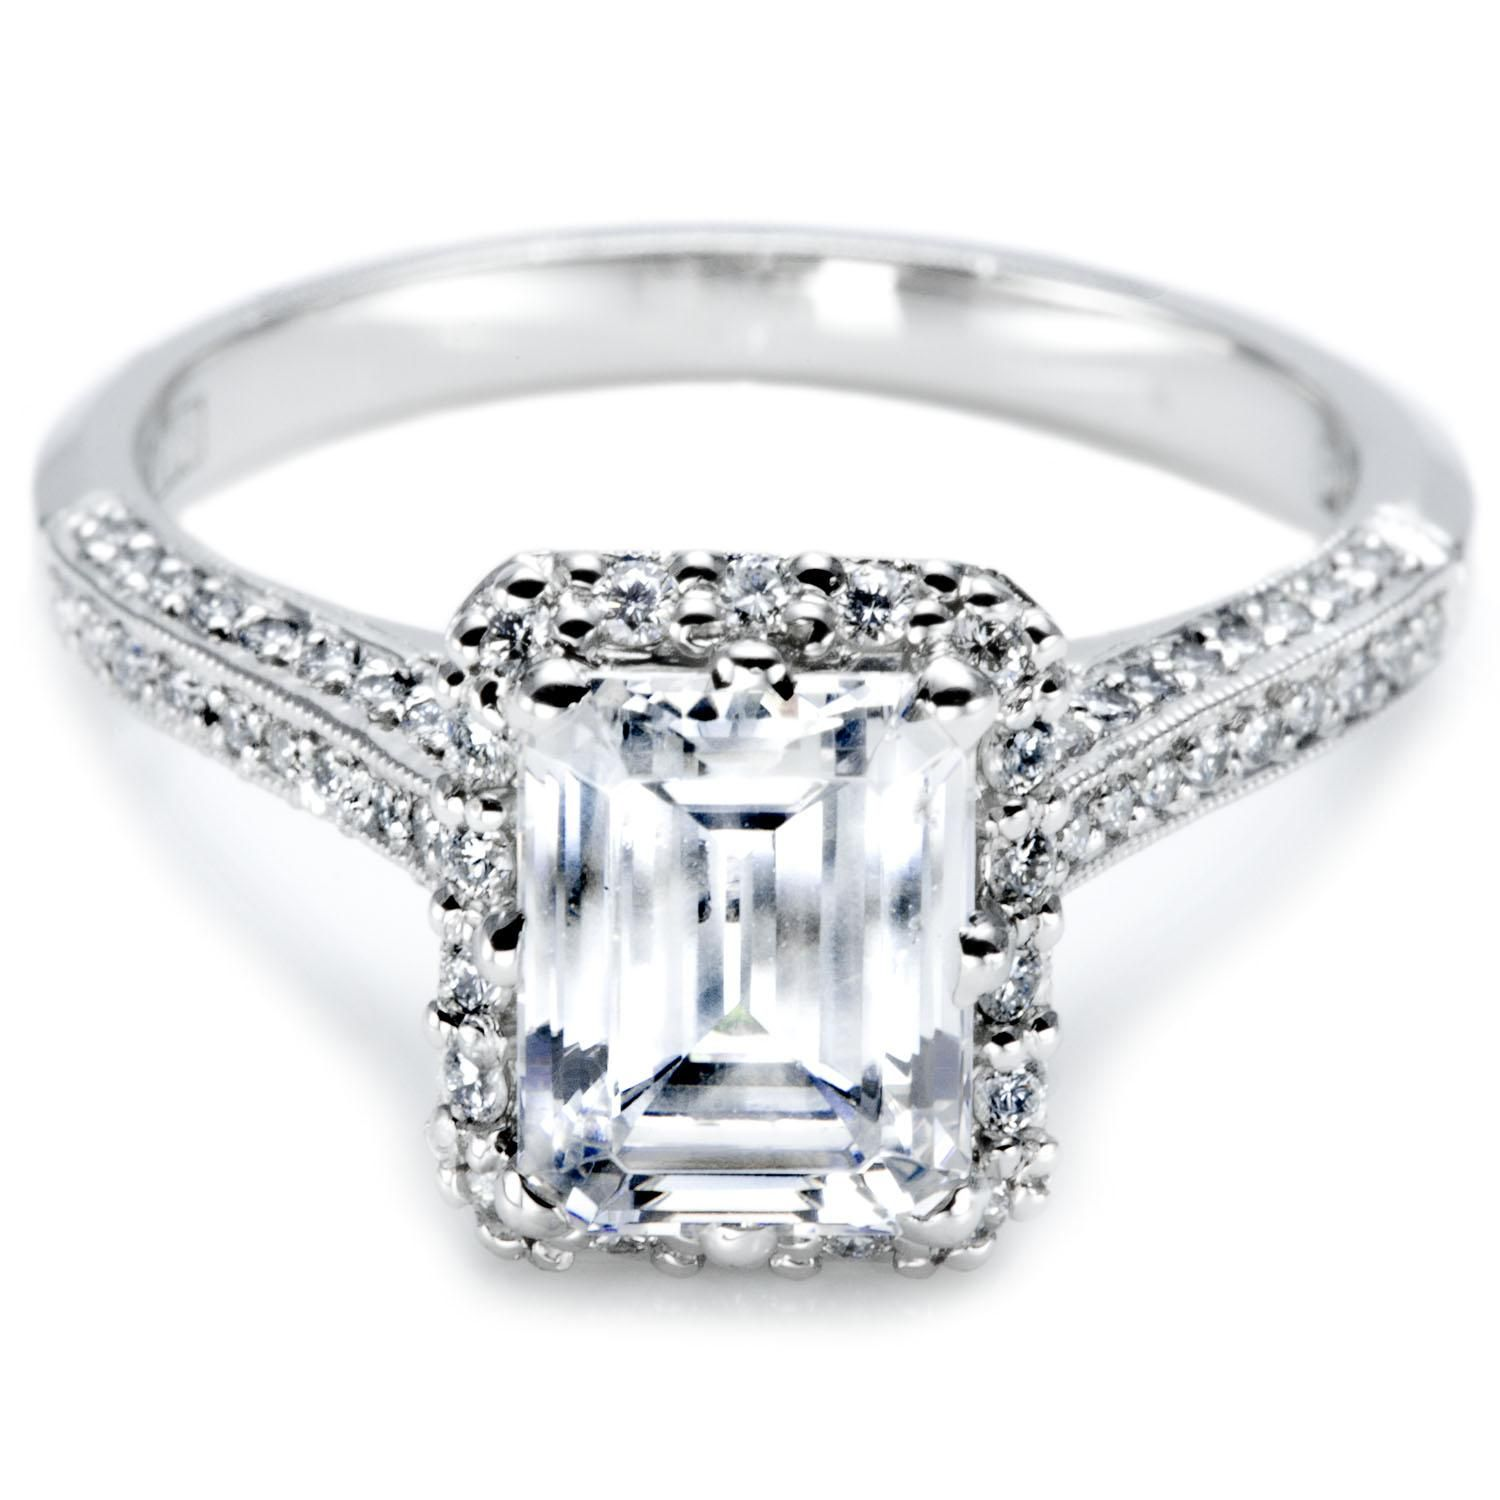 Emerald Cut Engagement Rings With Trapezoids 24 Wedding